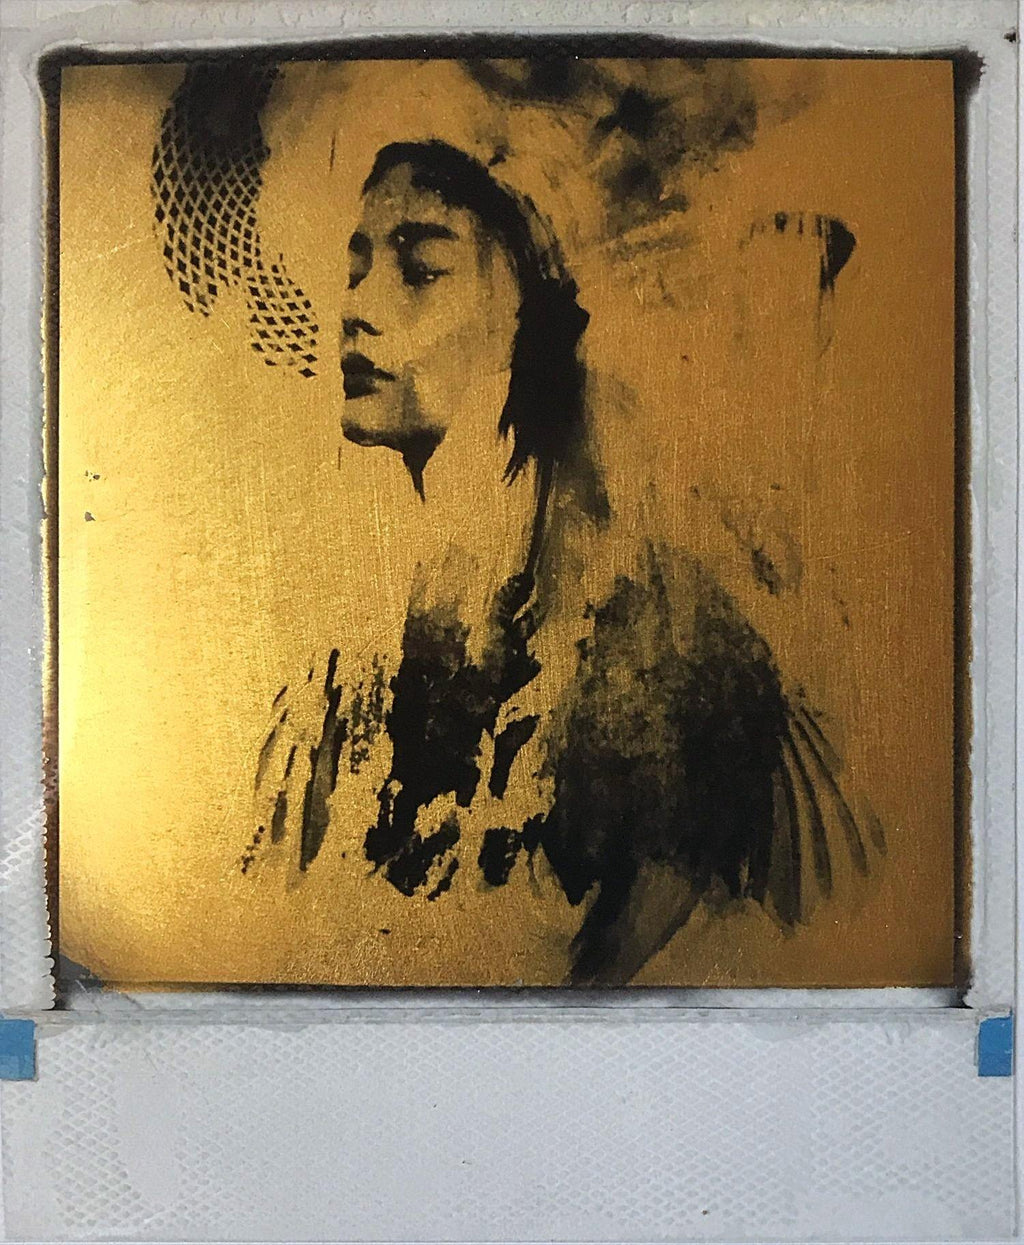 Echo,  Andrew Millar, gold foil, polaroid, art, La Maison Rebelle, gift shop, Los Angeles, gallery, fine art